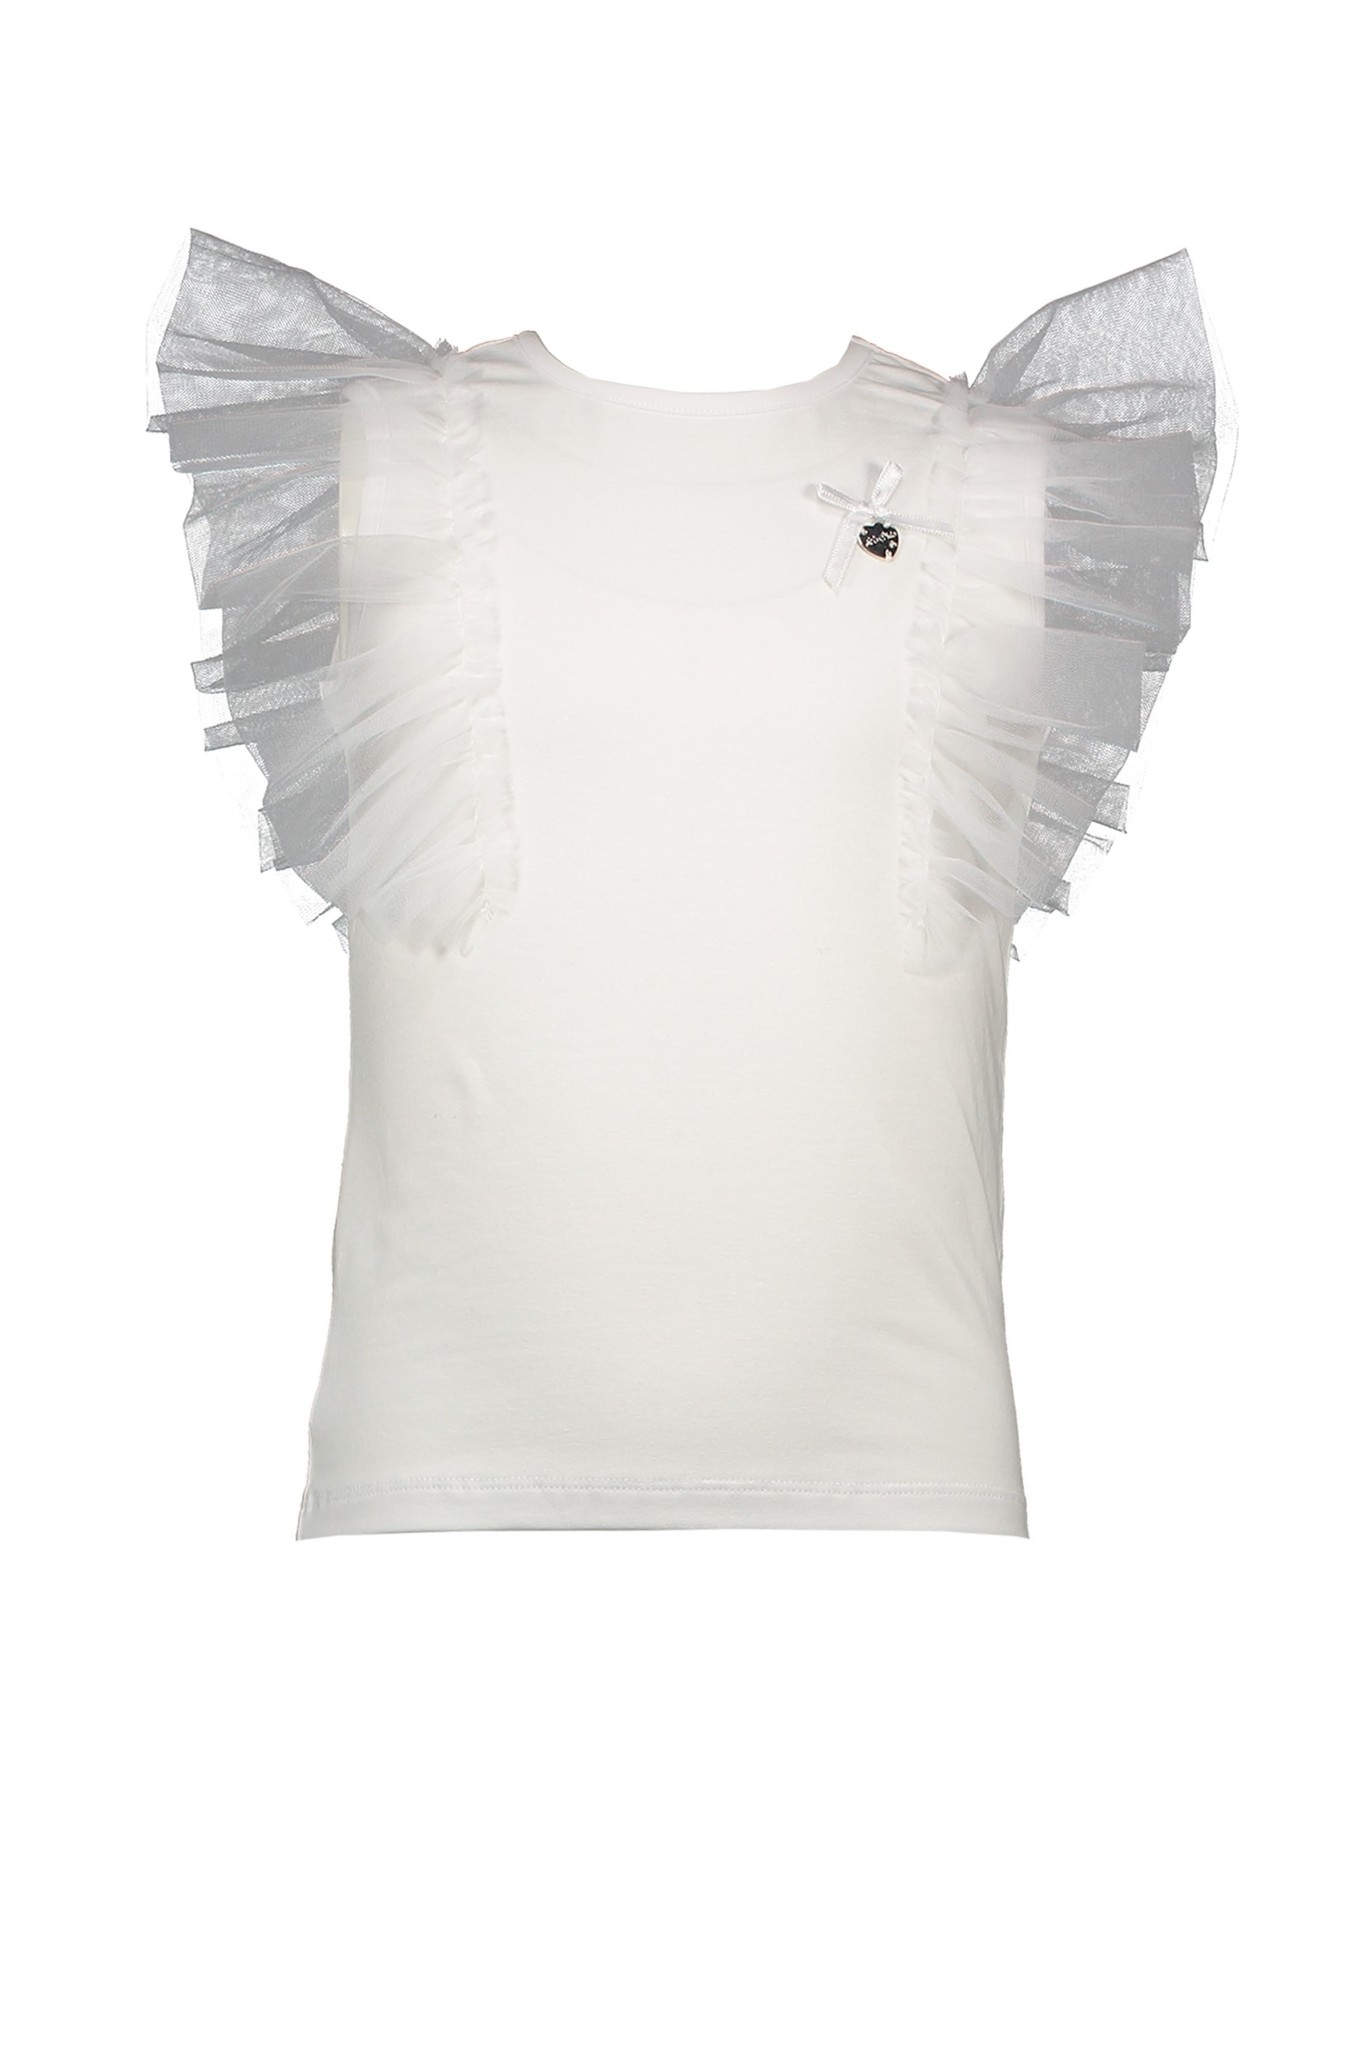 Lechic Le Chic White Tulle Sleeved T-shirt